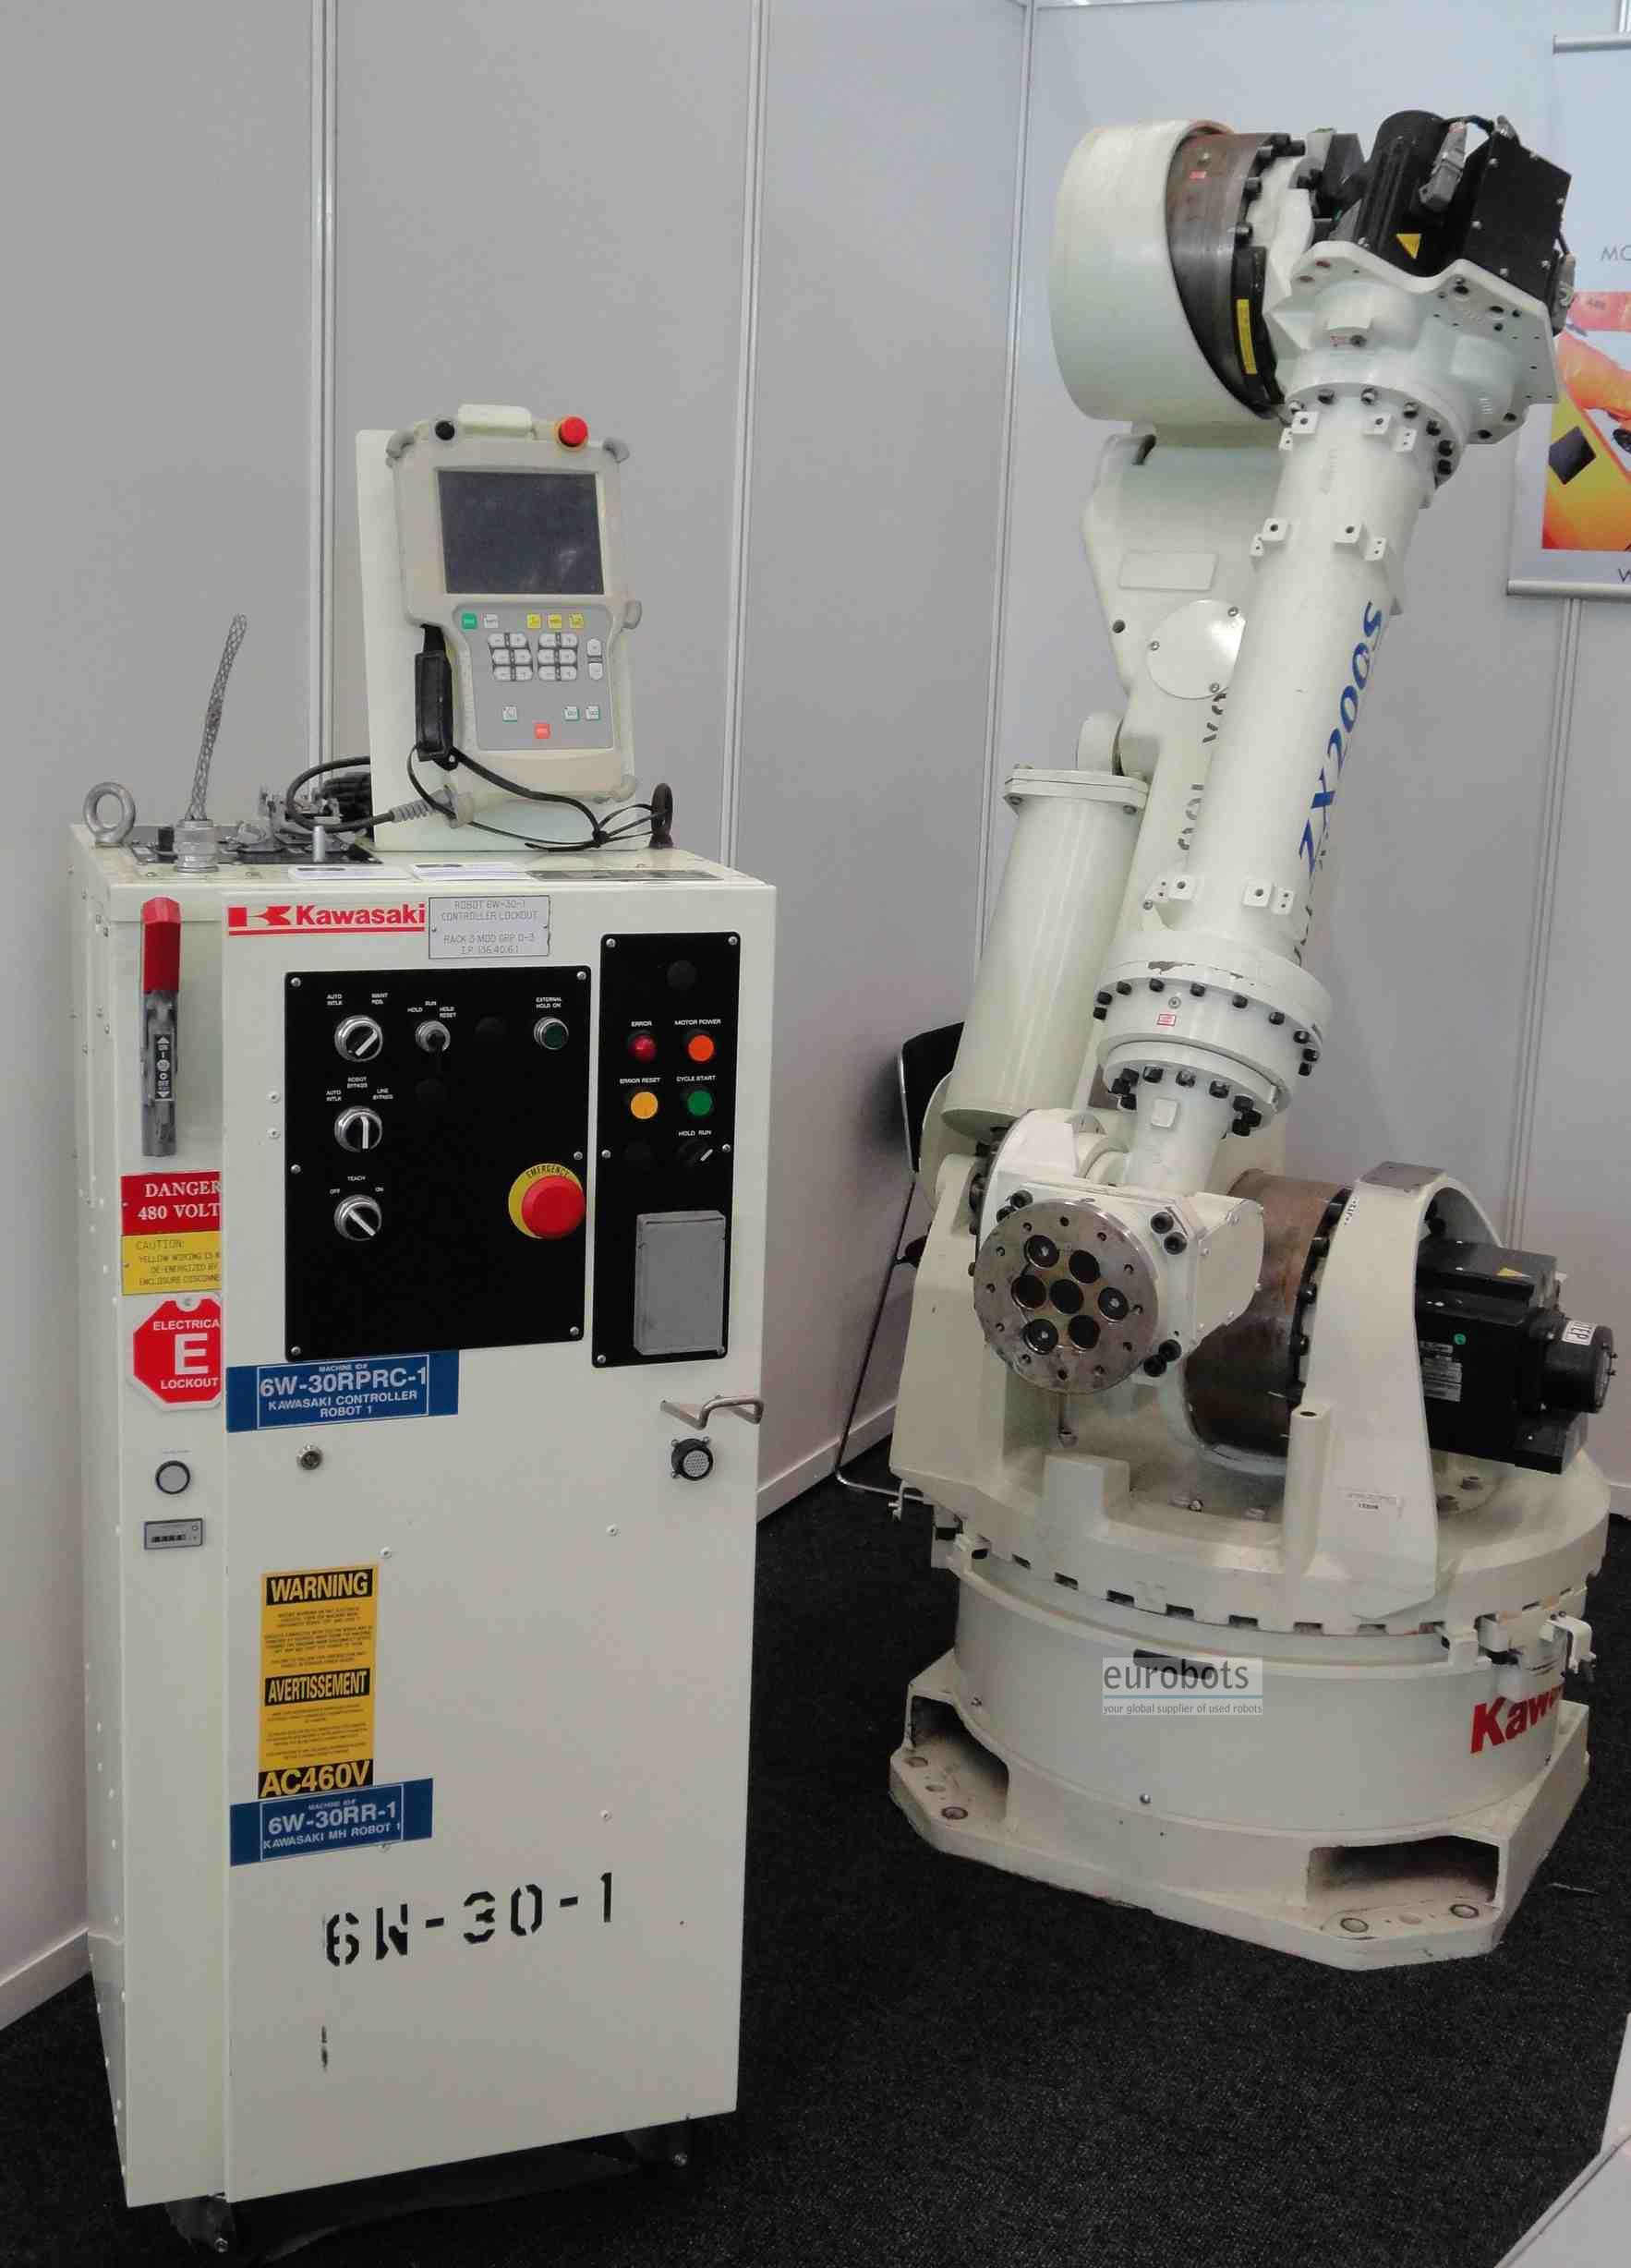 Used Robot Zx200s Kawasaki With C Controller